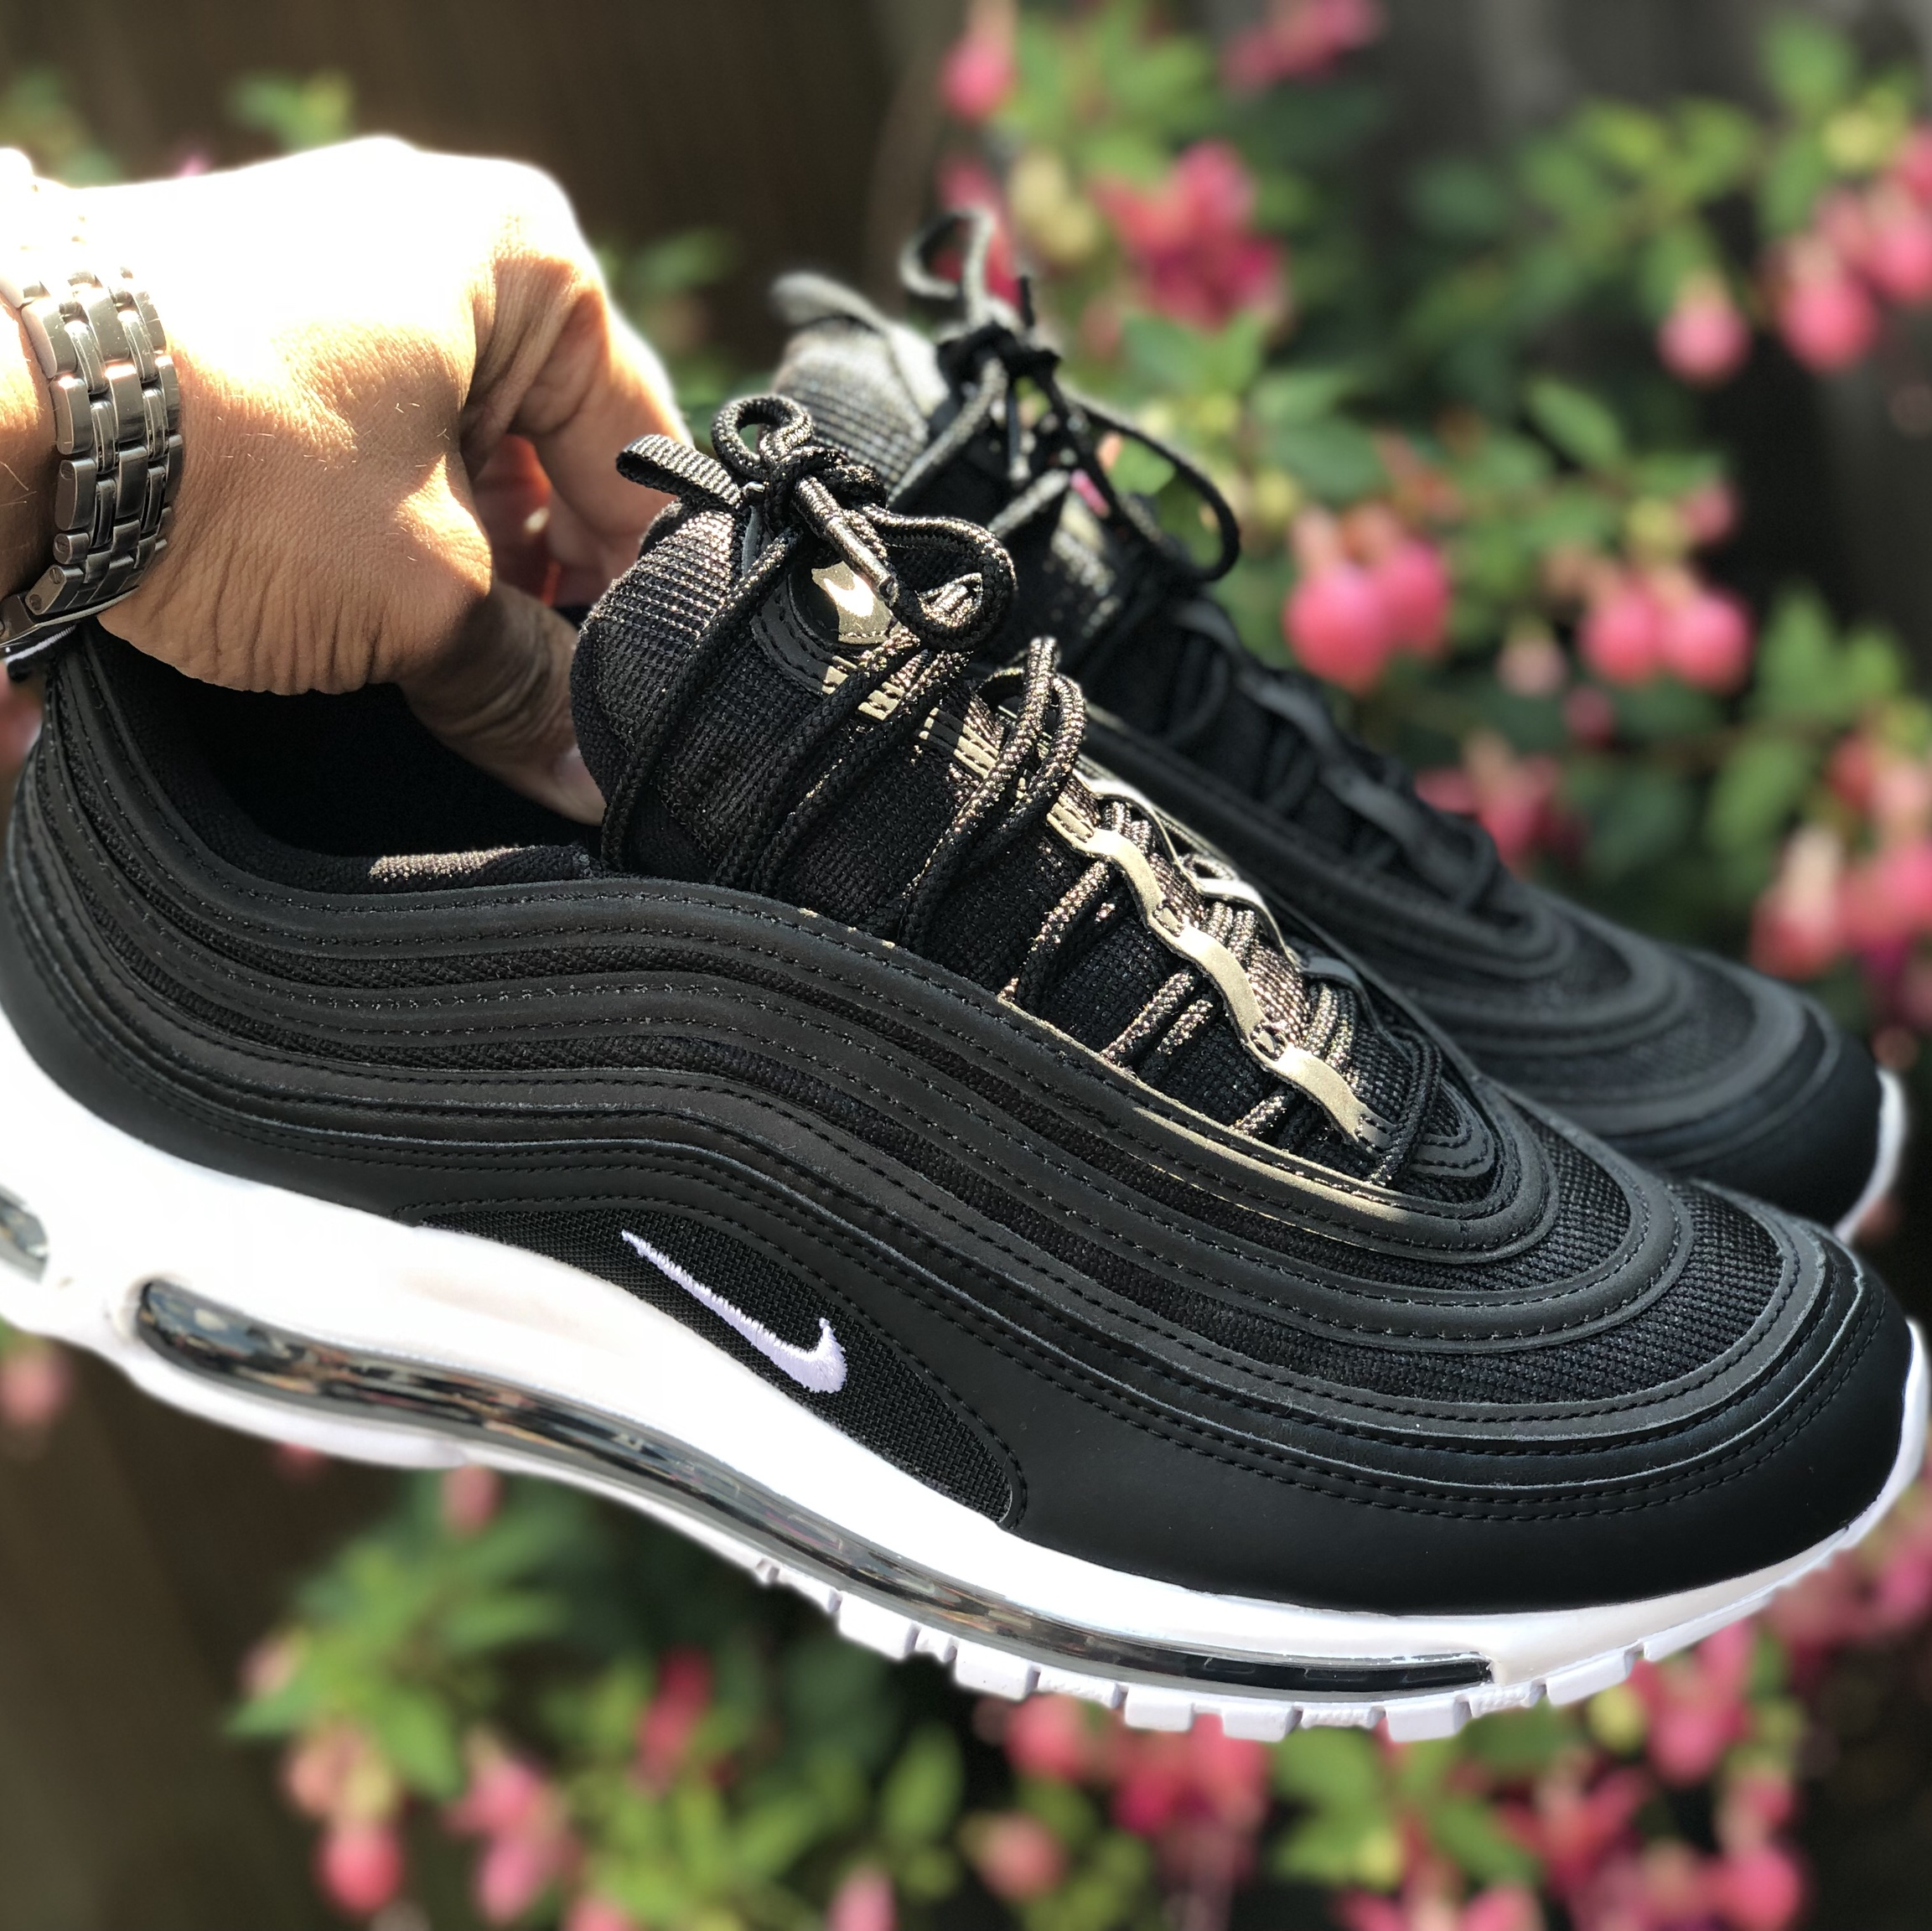 on wholesale large discount new images of Nike air max 97 nocturnal animal Black/white Uk 8... - Depop